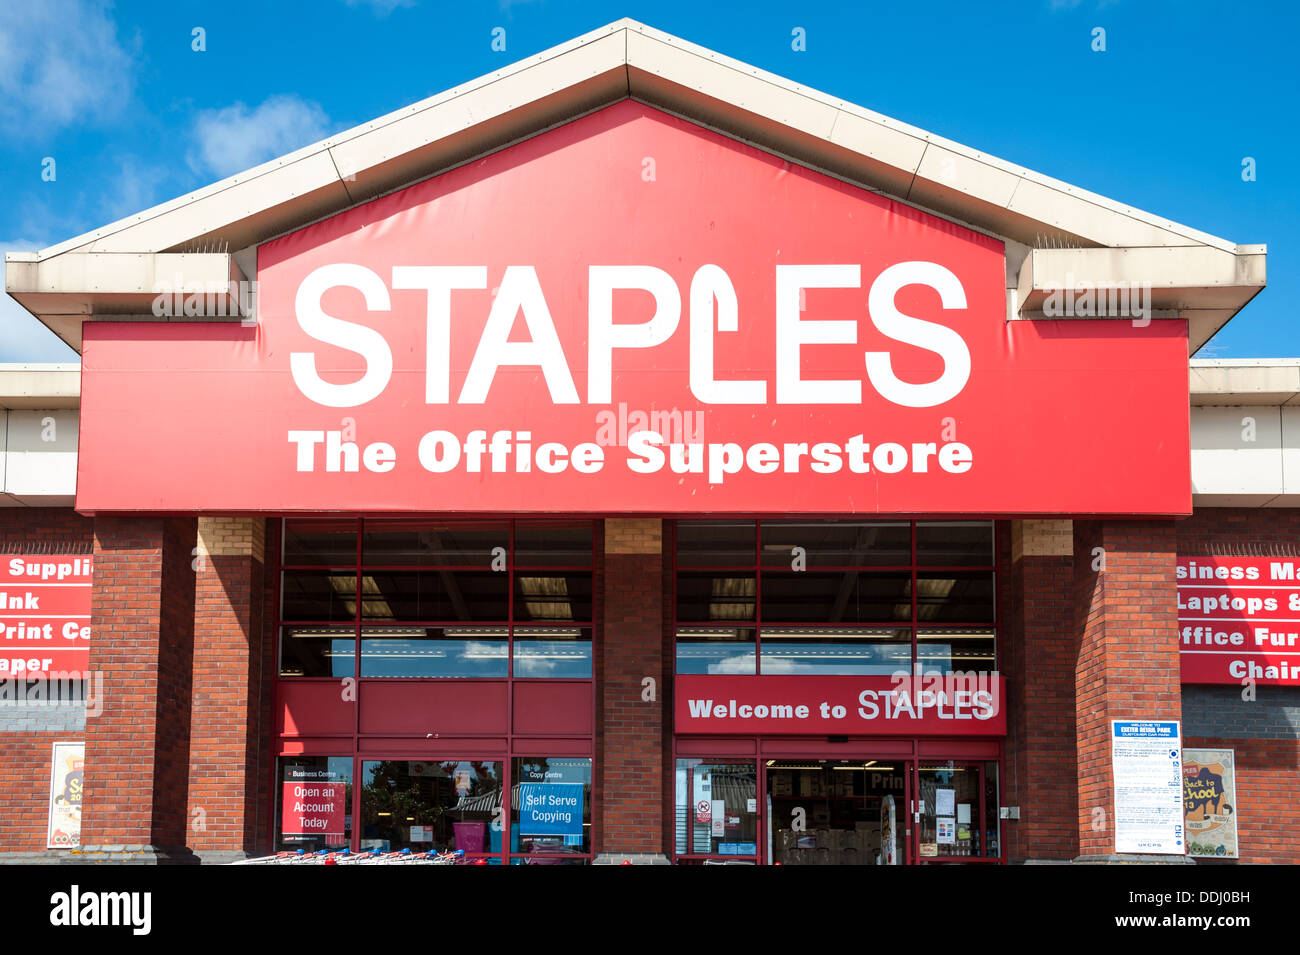 What Time Does Staples Open Today >> Staples Store Uk Stock Photo 60017093 Alamy